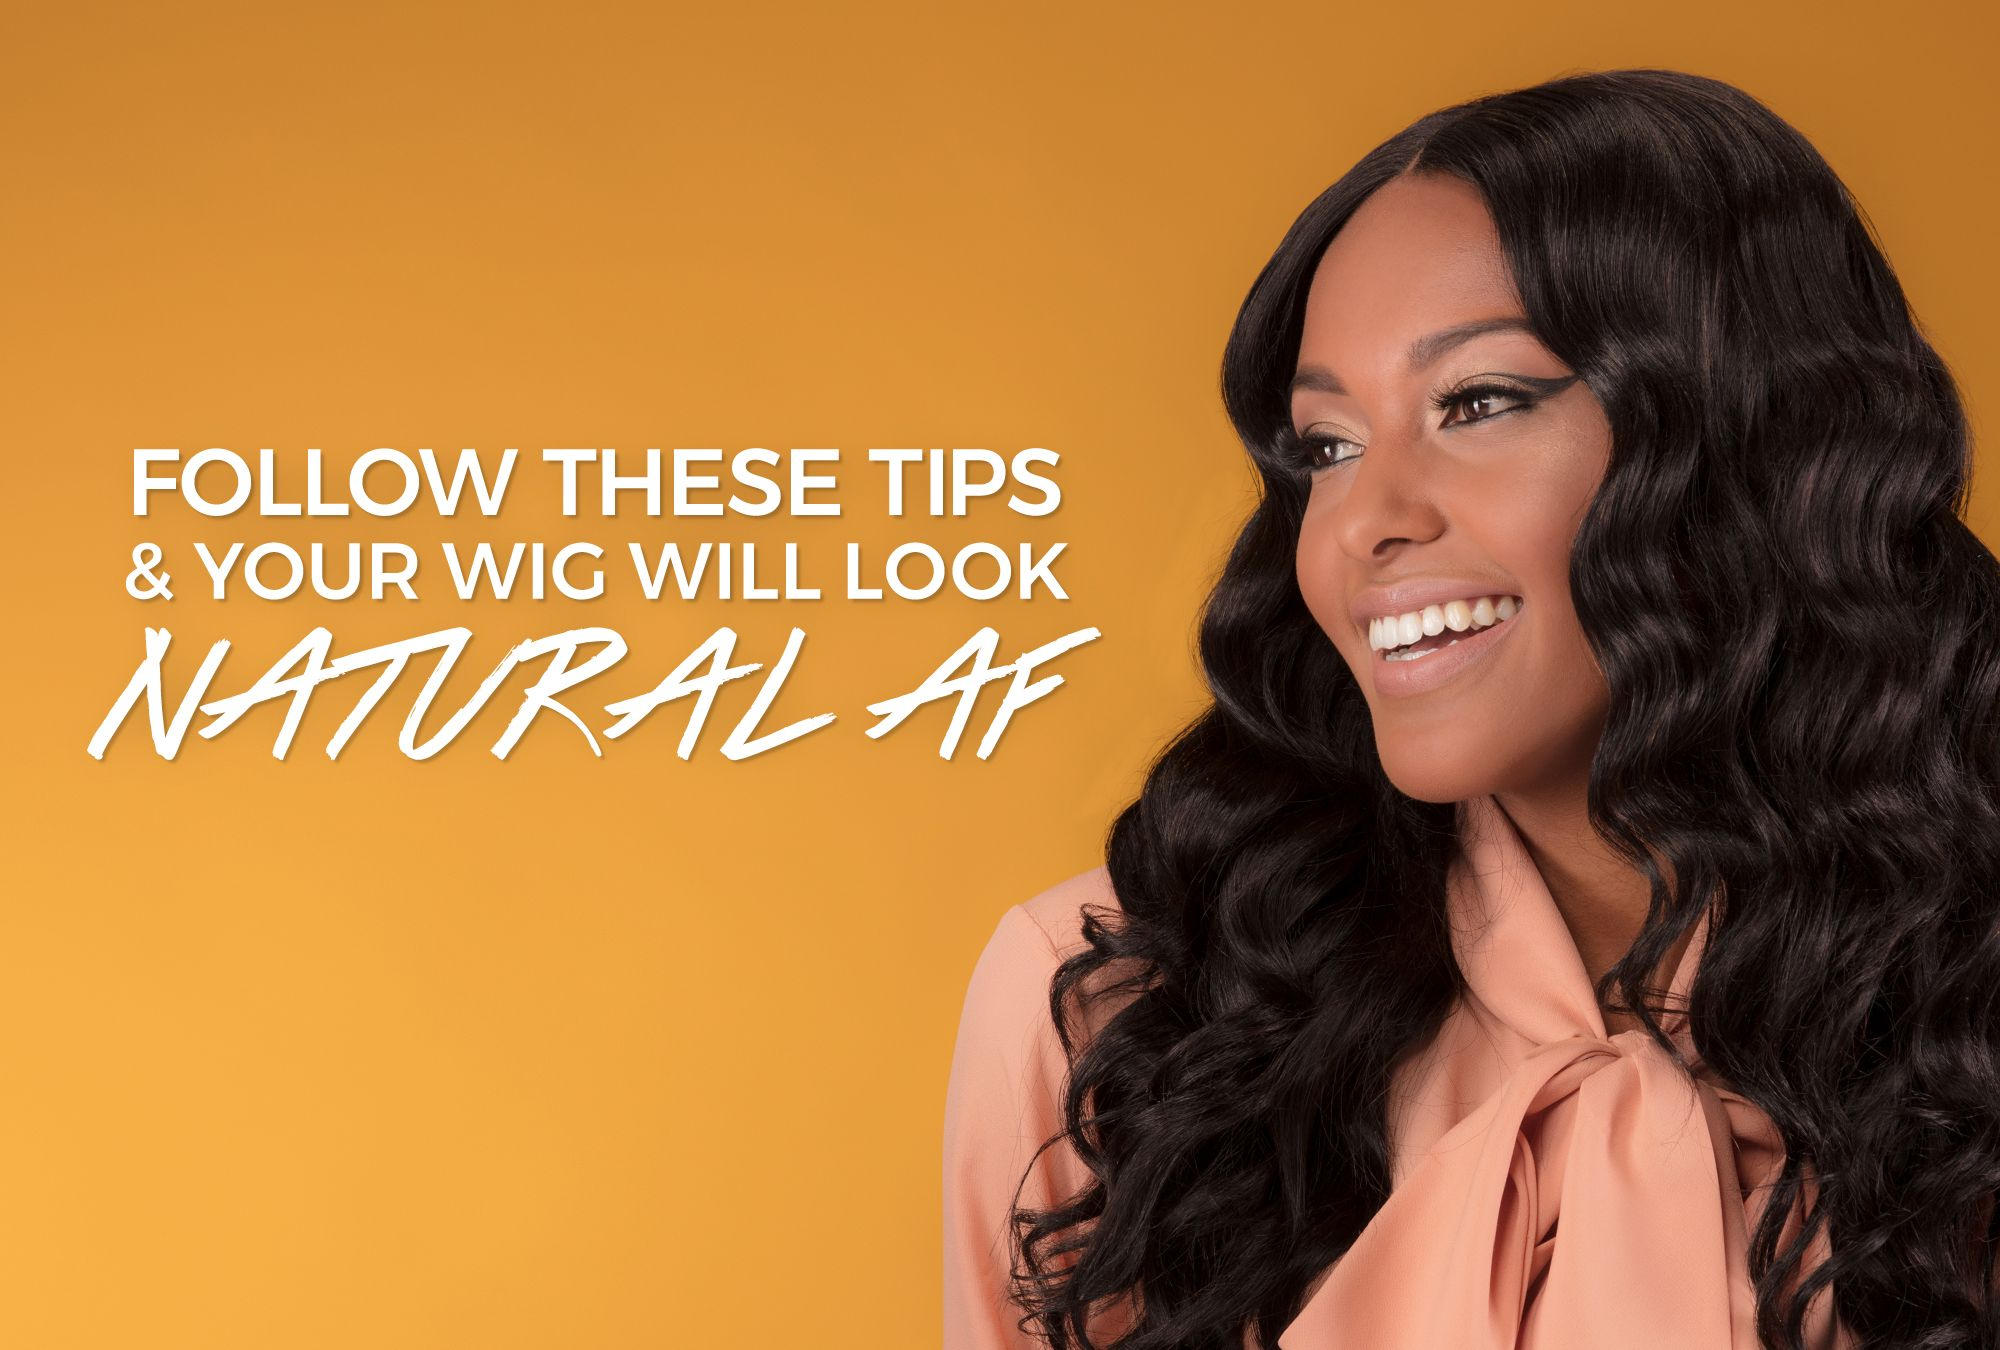 Follow These Tips and Your Wig Will Look Natural AF